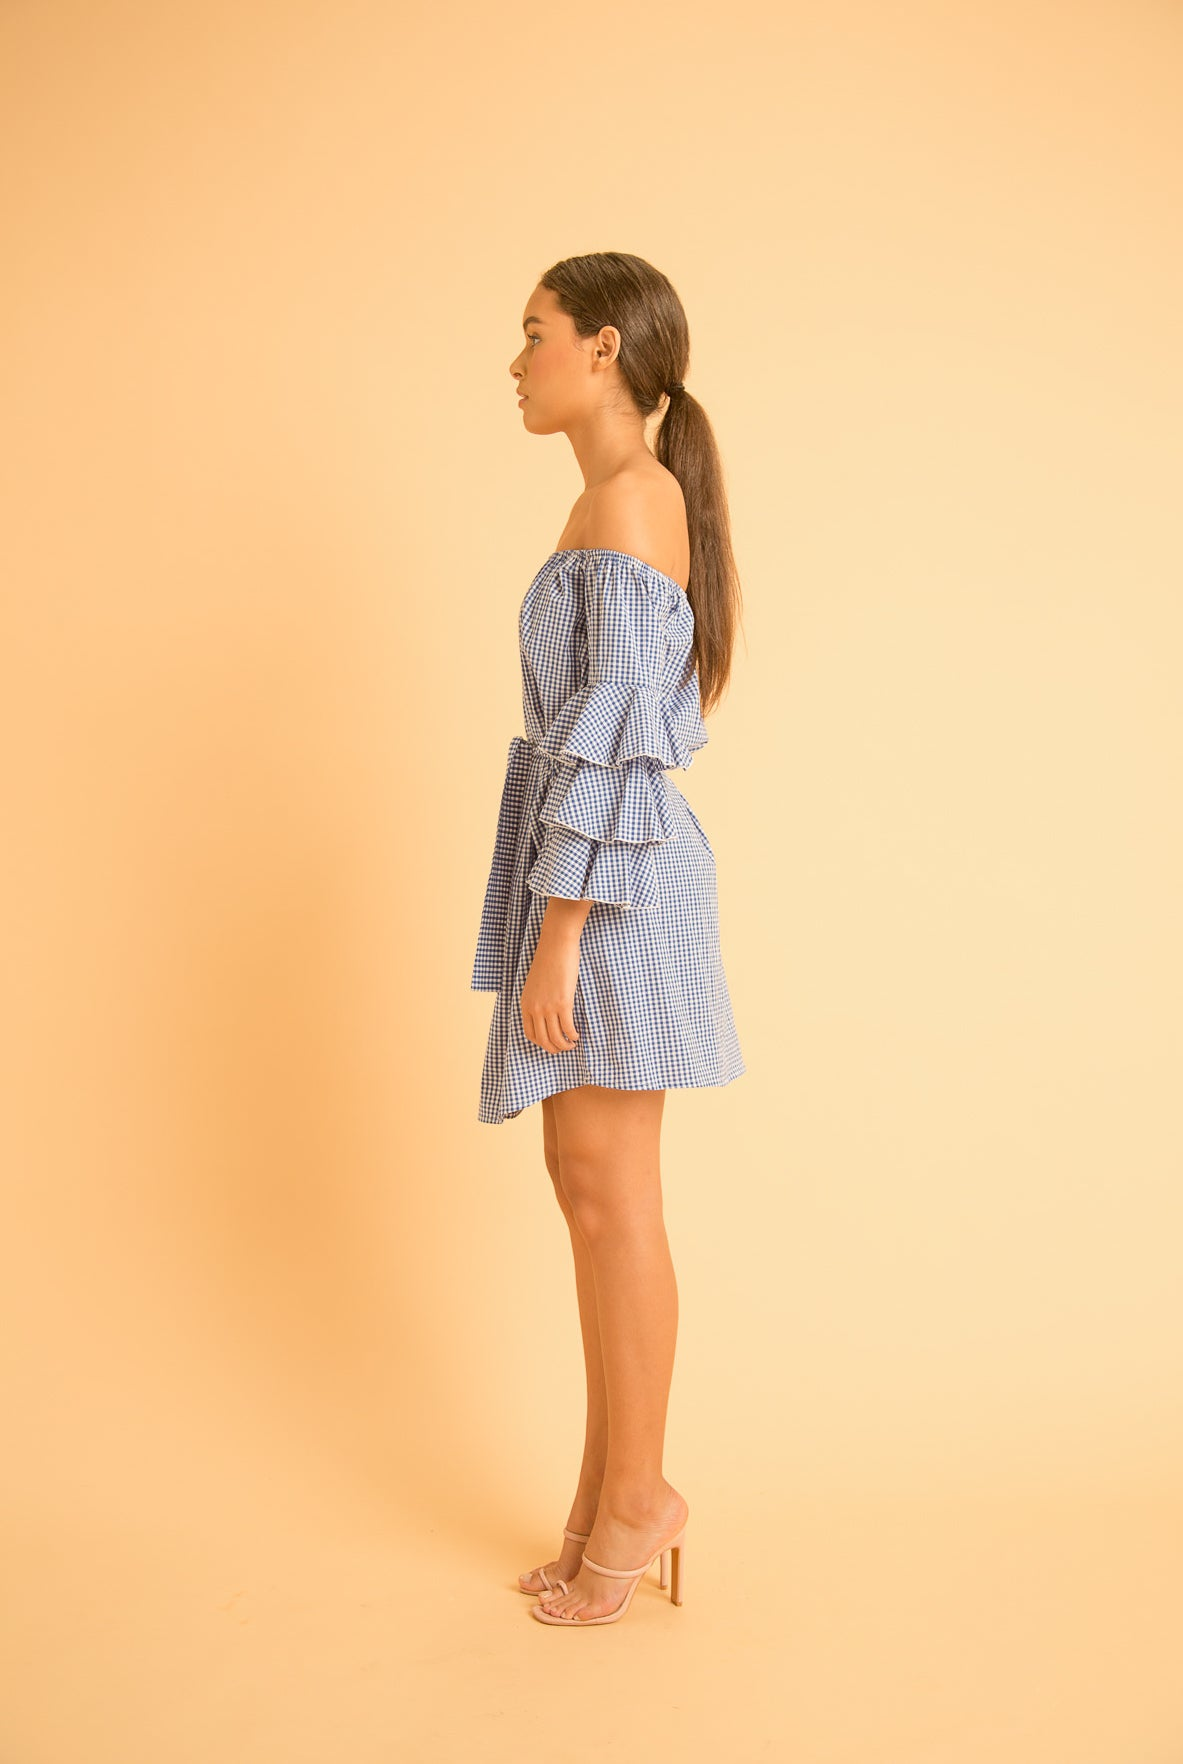 saint-mojavi - FLAMENCO GINGHAM DRESS - SAÏNT MOJAVÏ -